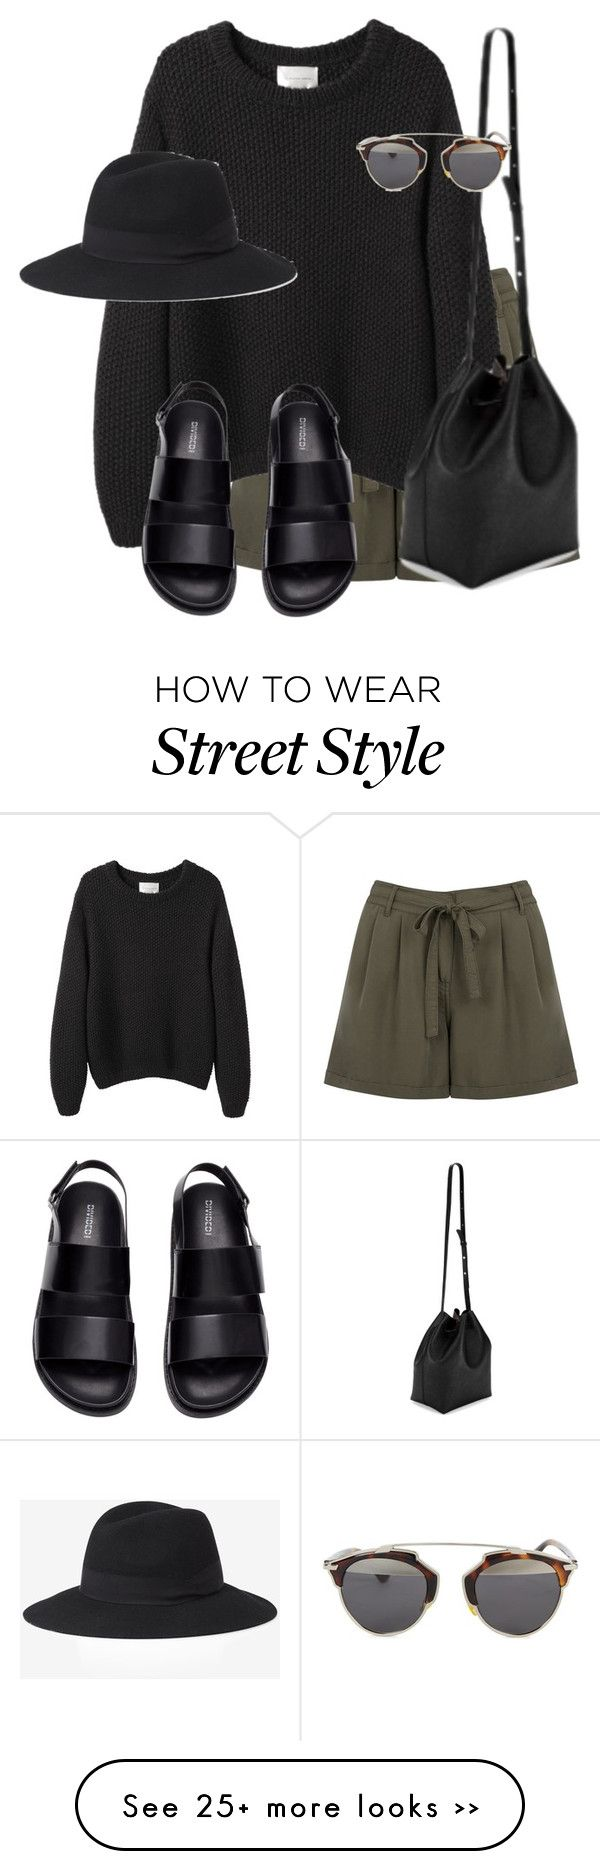 """Untitled #9220"" by alexsrogers on Polyvore"